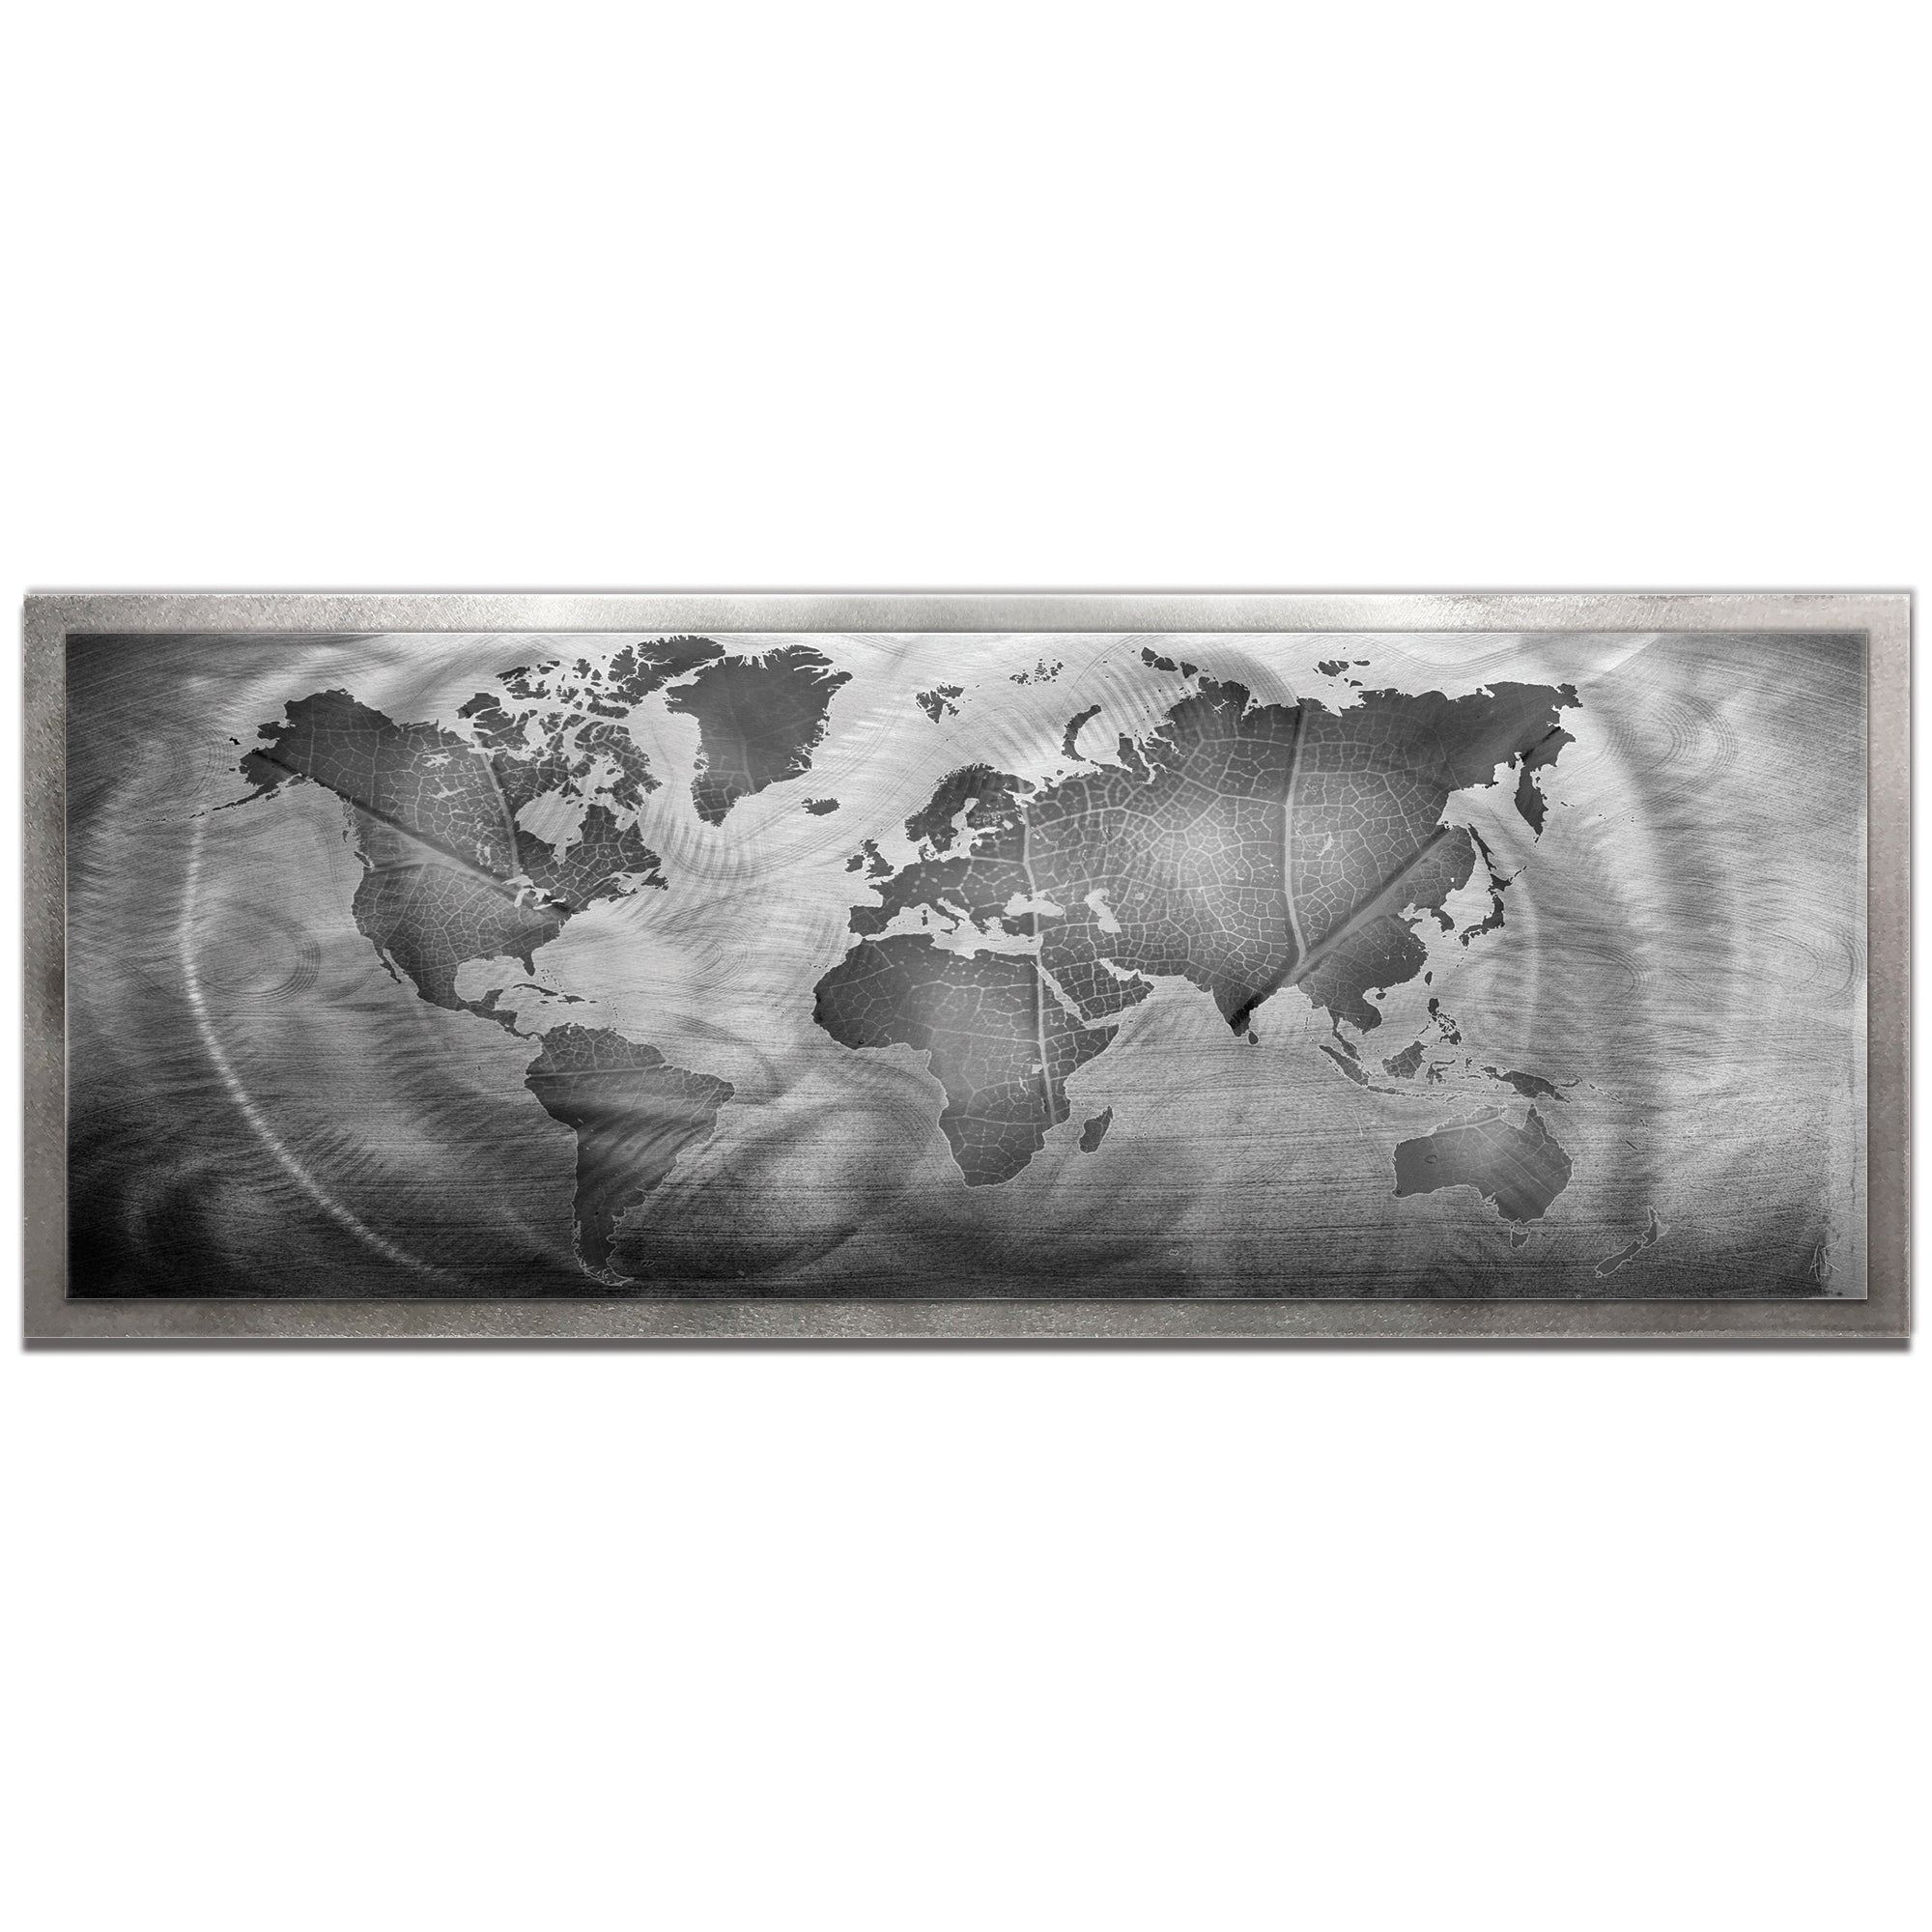 Monochrome Land and Sea Framed by Amber LaRosa - Traditional World Map Art on Colored Metal